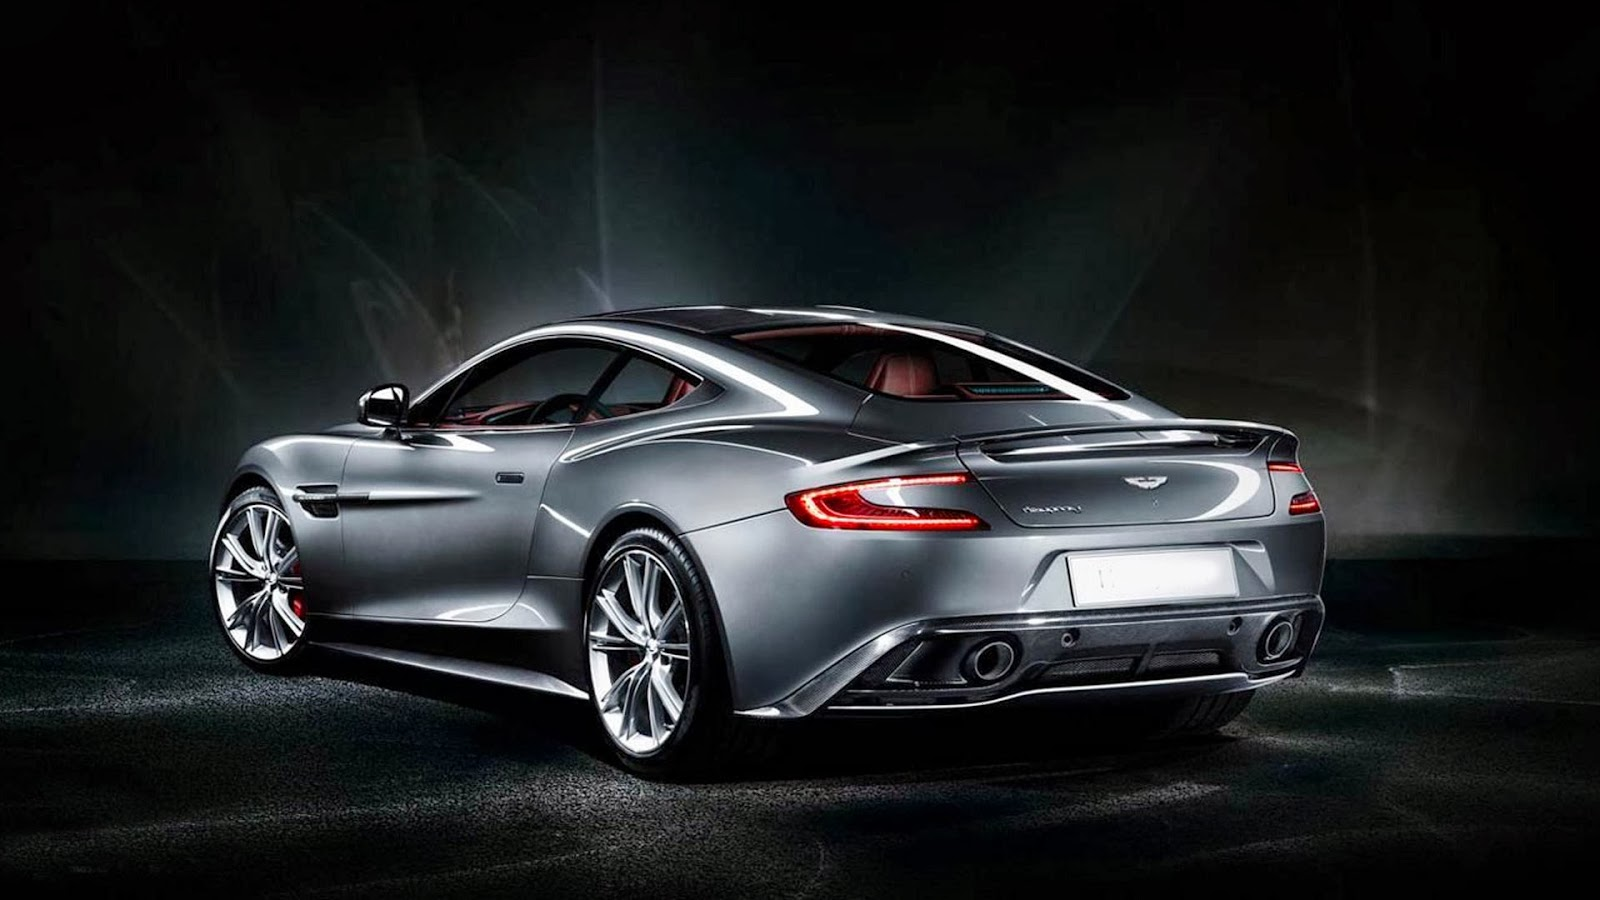 Aston Martin Vanquish Car Review - All New Cars Wallpapers ...